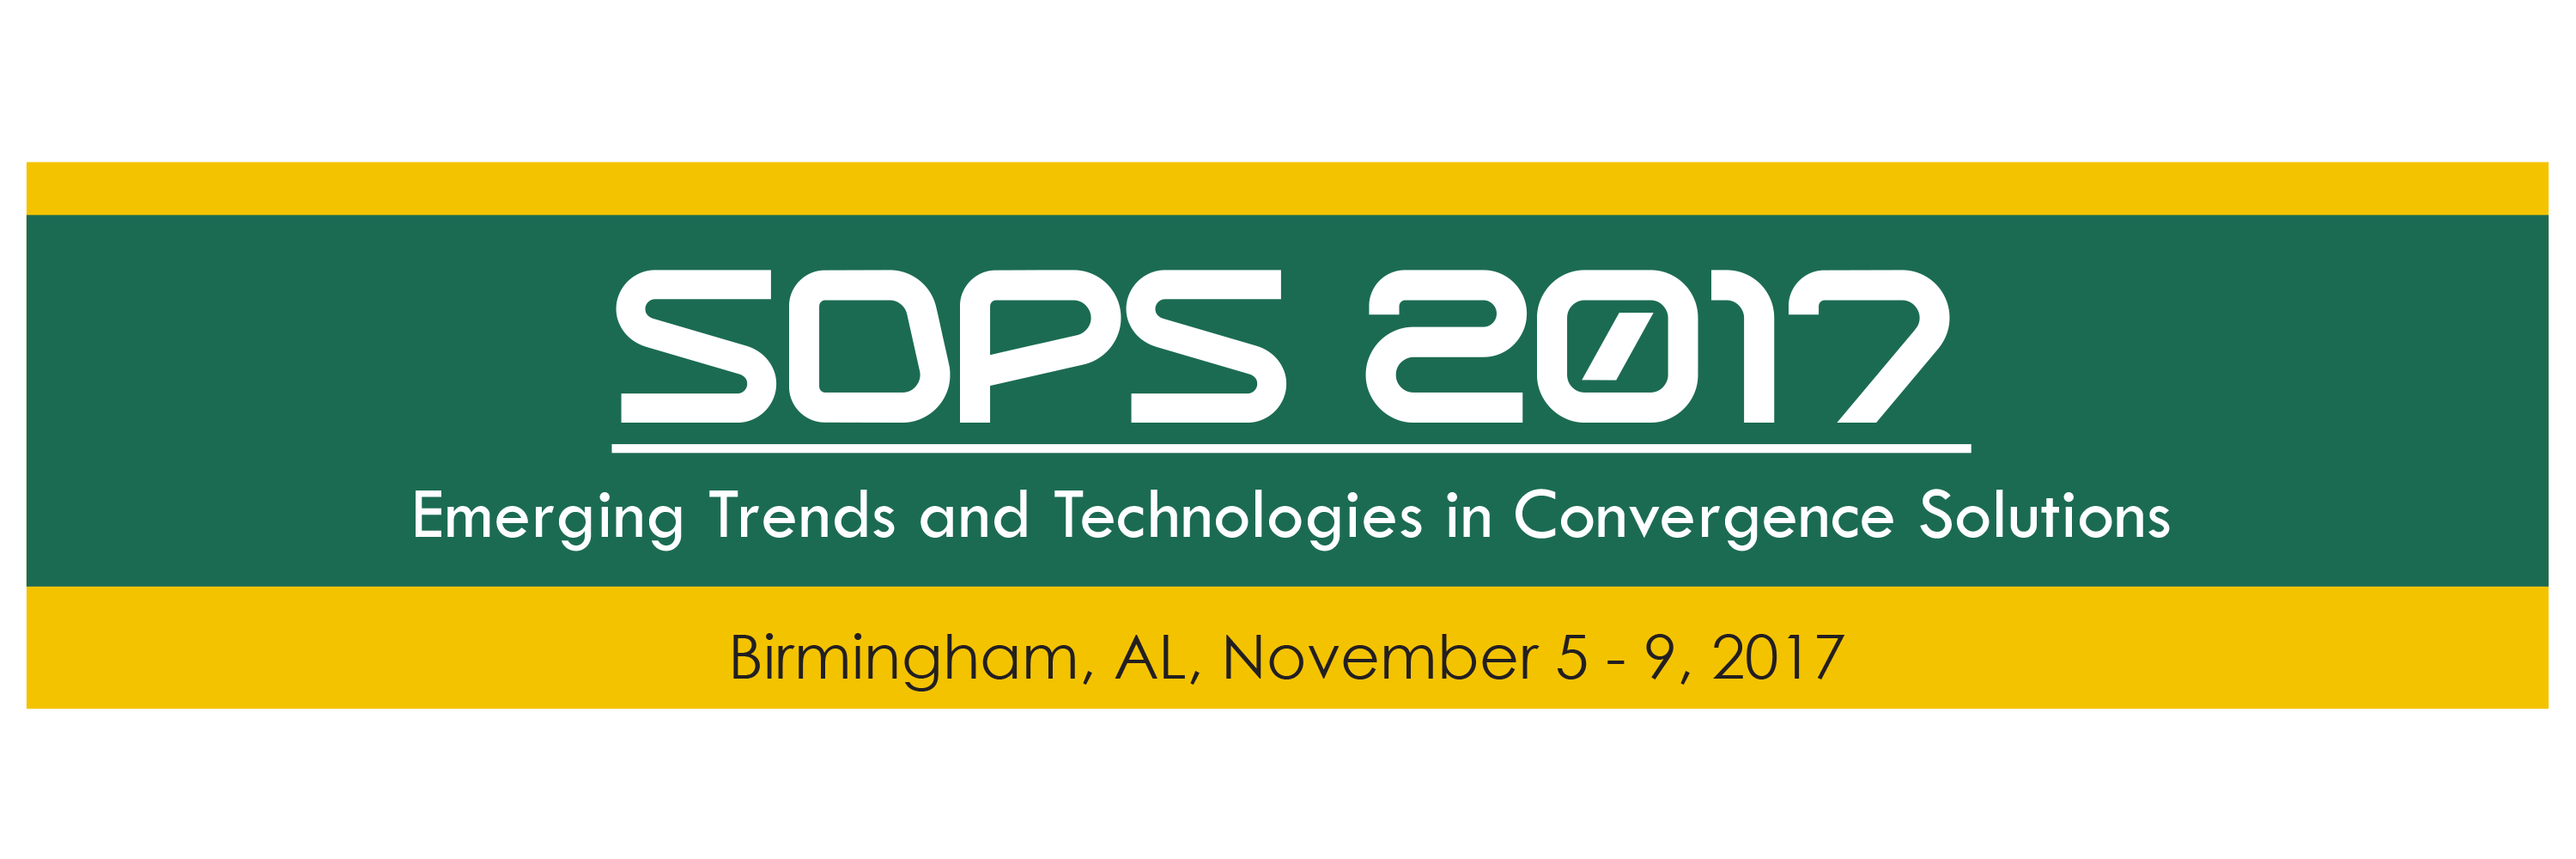 SDPS 2017 Conference